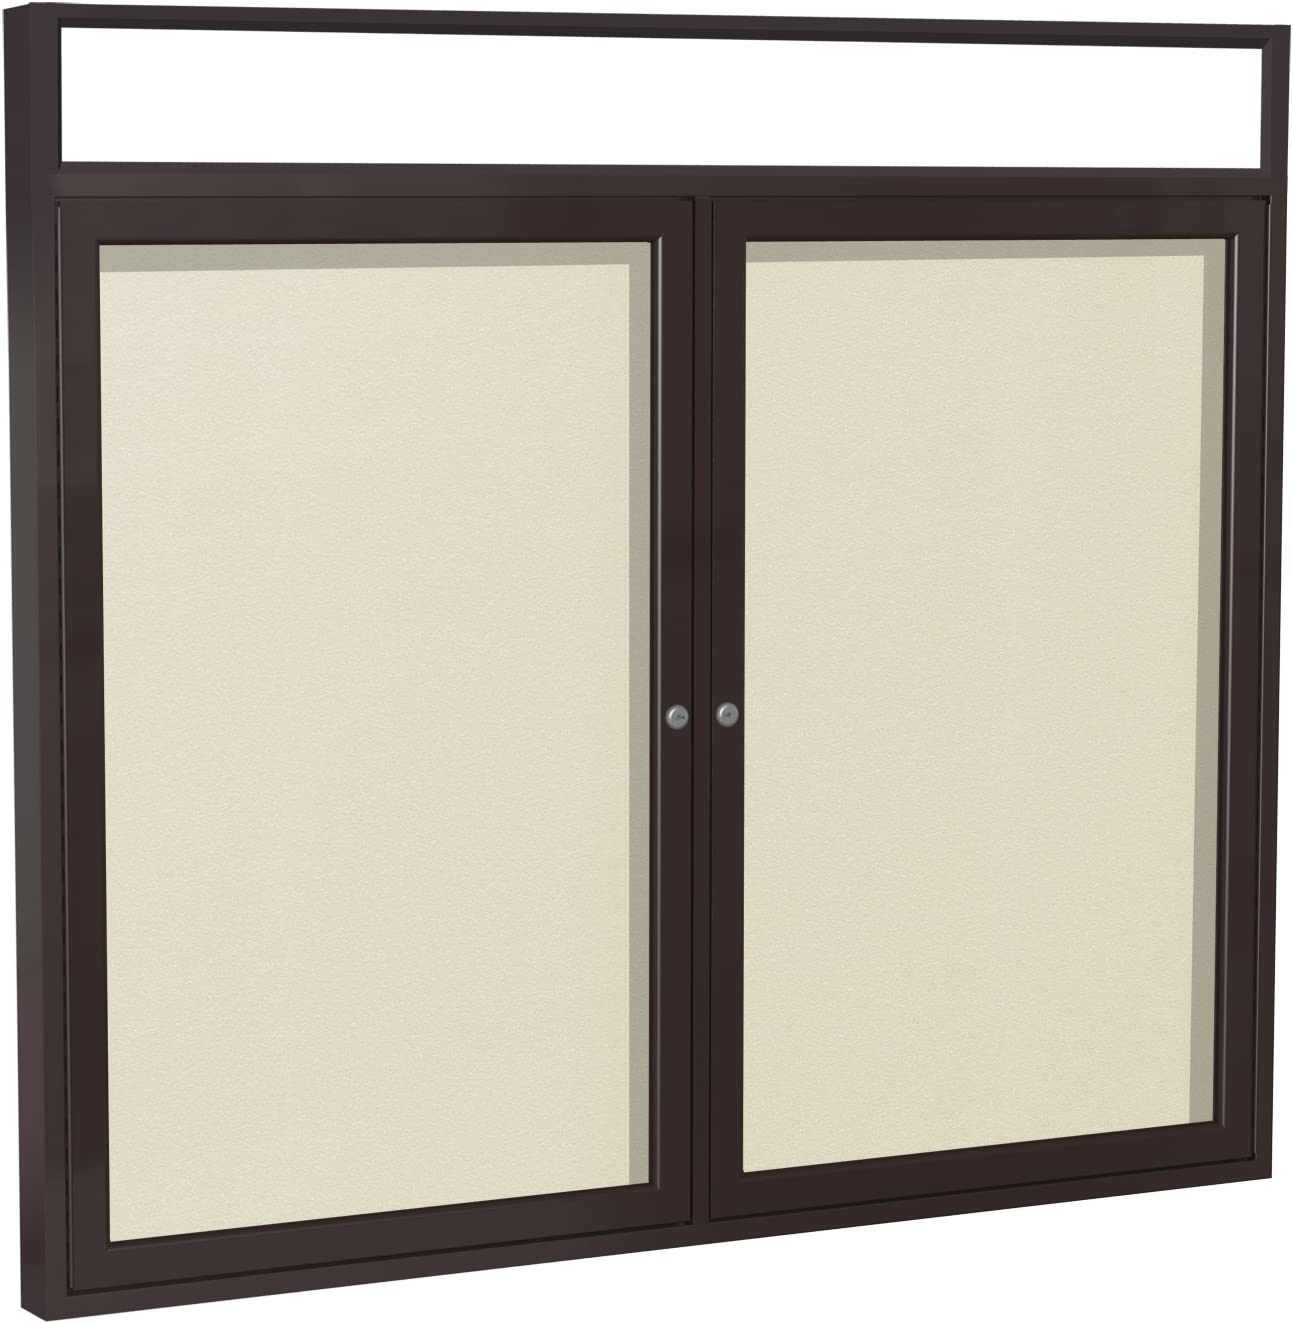 Ghent 3 x 4 Inches Outdoor Bronze Frame Enclosed Vinyl Bulletin Board with Headliner Caramel Made in the USA